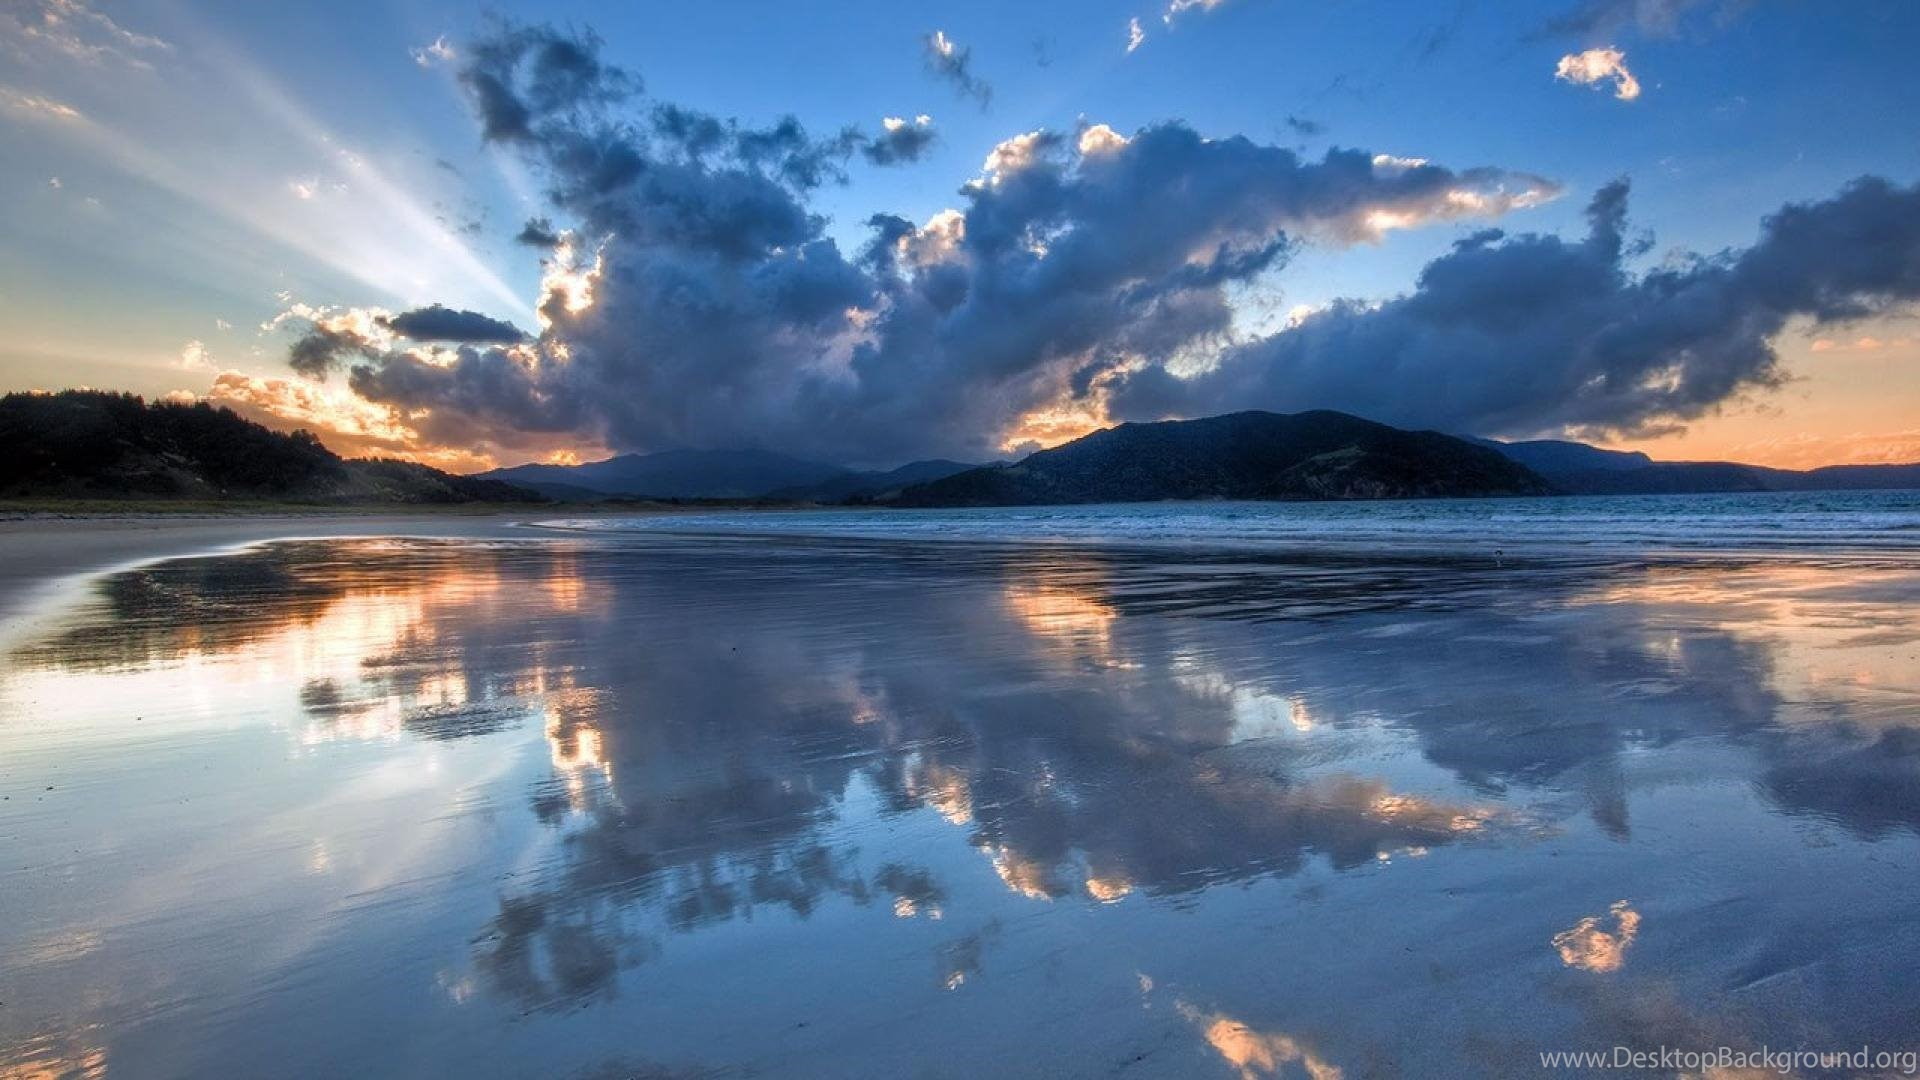 National Geographic Wallpaper Download: High Quality Nat Geo Wallpapers Desktop Background